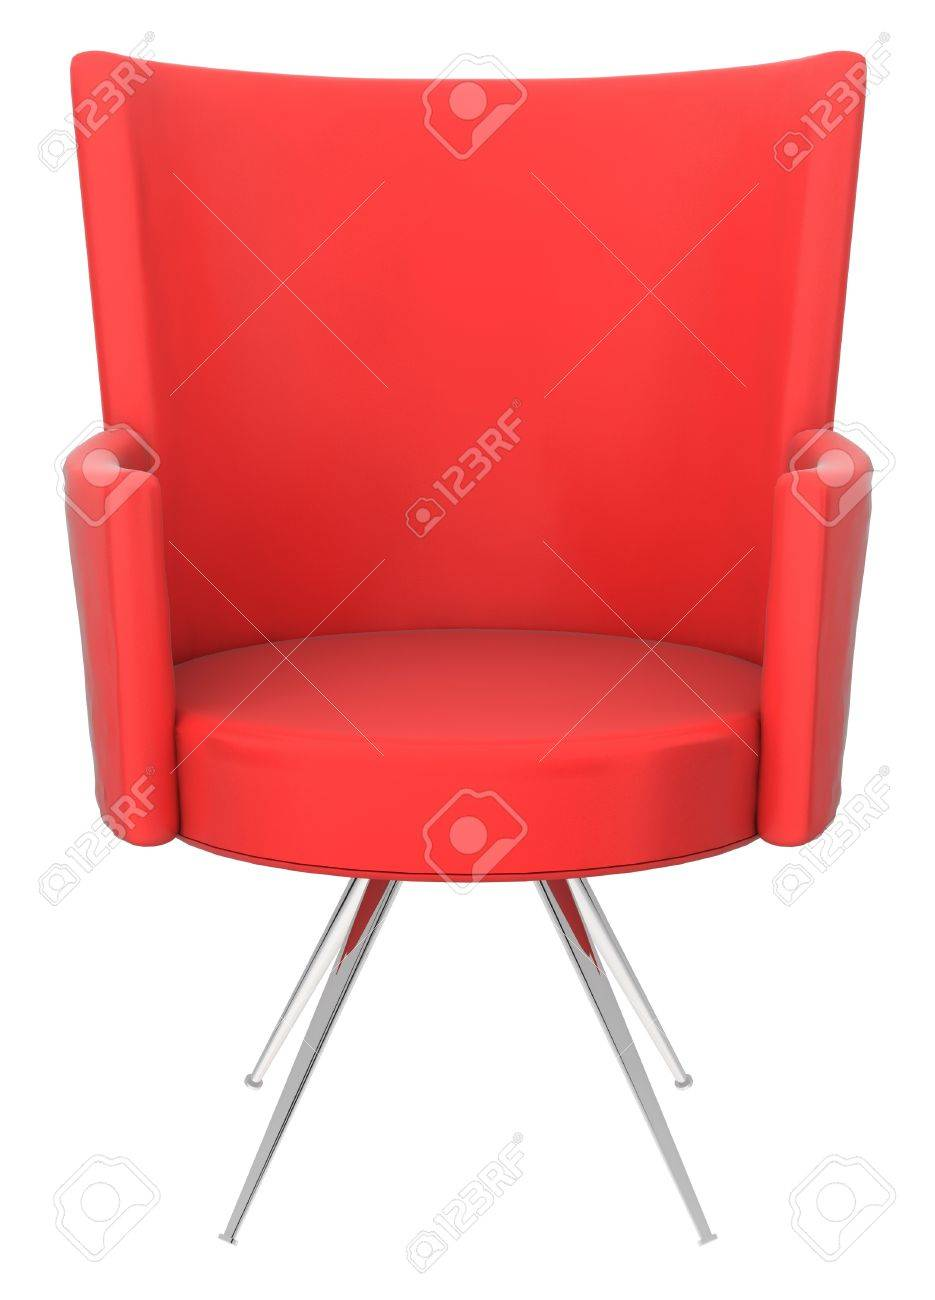 red modern chair isolated over white background stock photo  - red modern chair isolated over white background stock photo